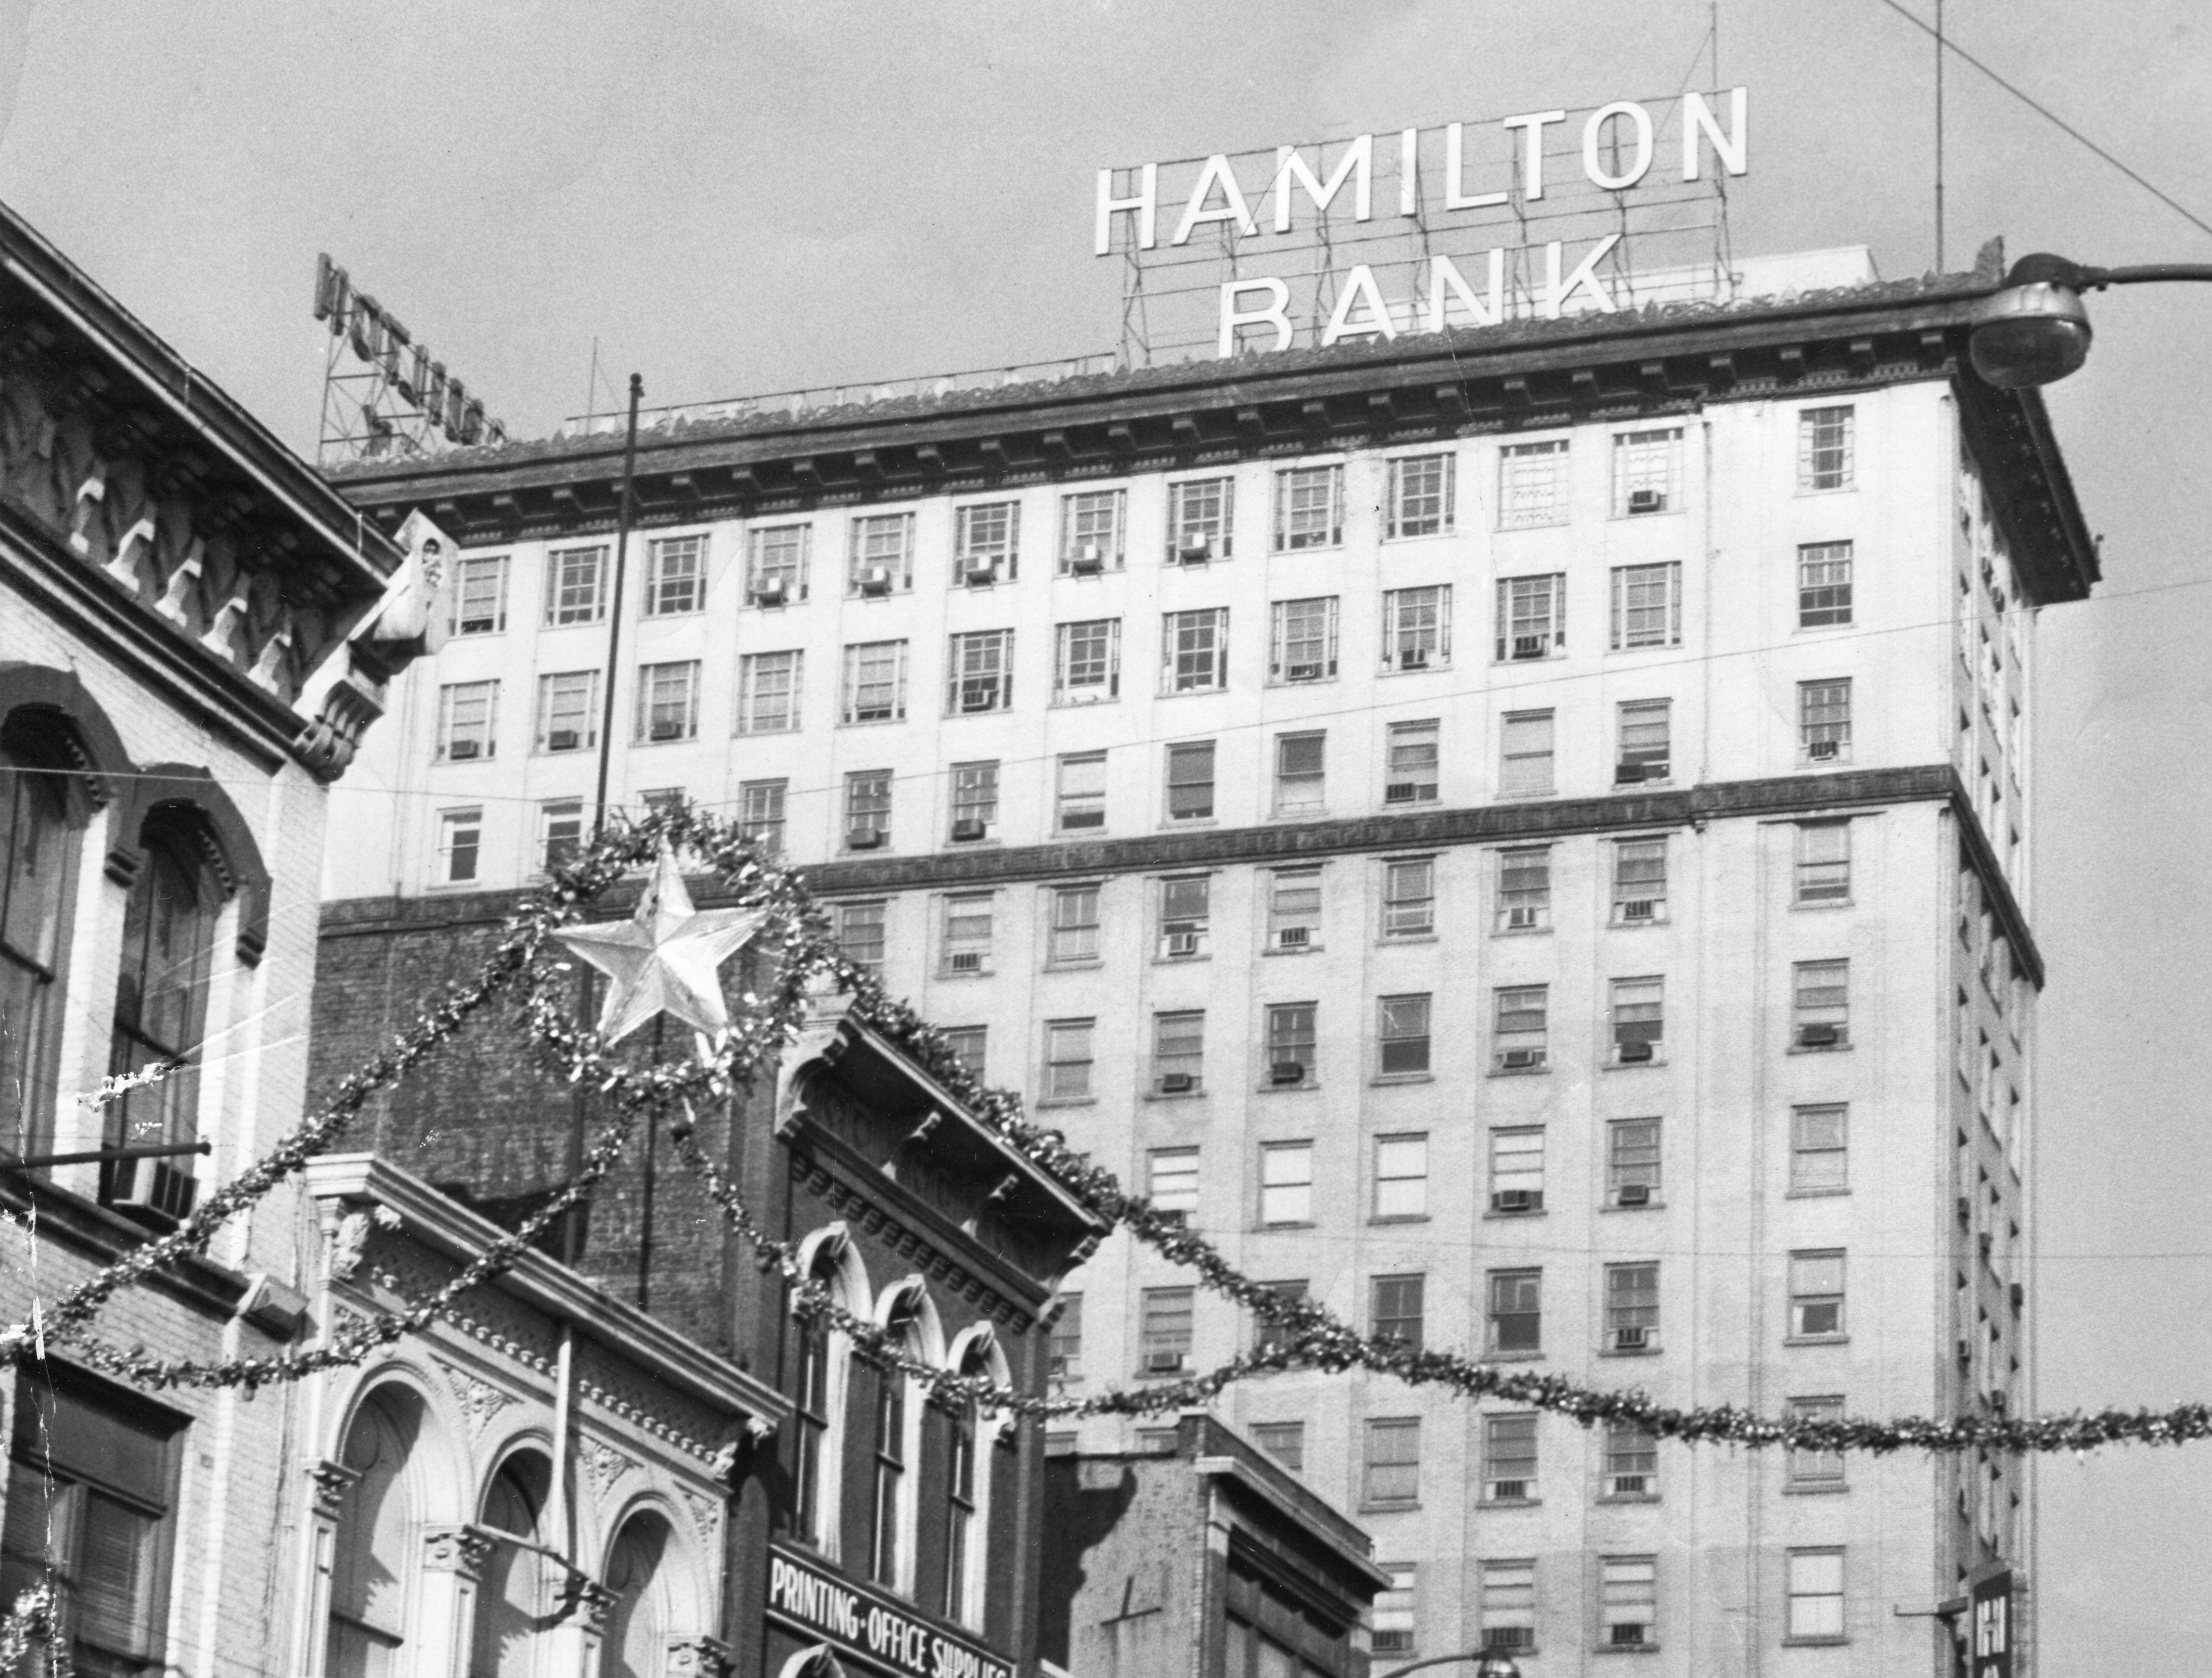 The Holston Building, home to Hamilton National Bank, is pictured Dec. 29, 1961. The building now is a condo development called the Holston. In the foreground is the now razed west side of the 600 block of Gay Street.